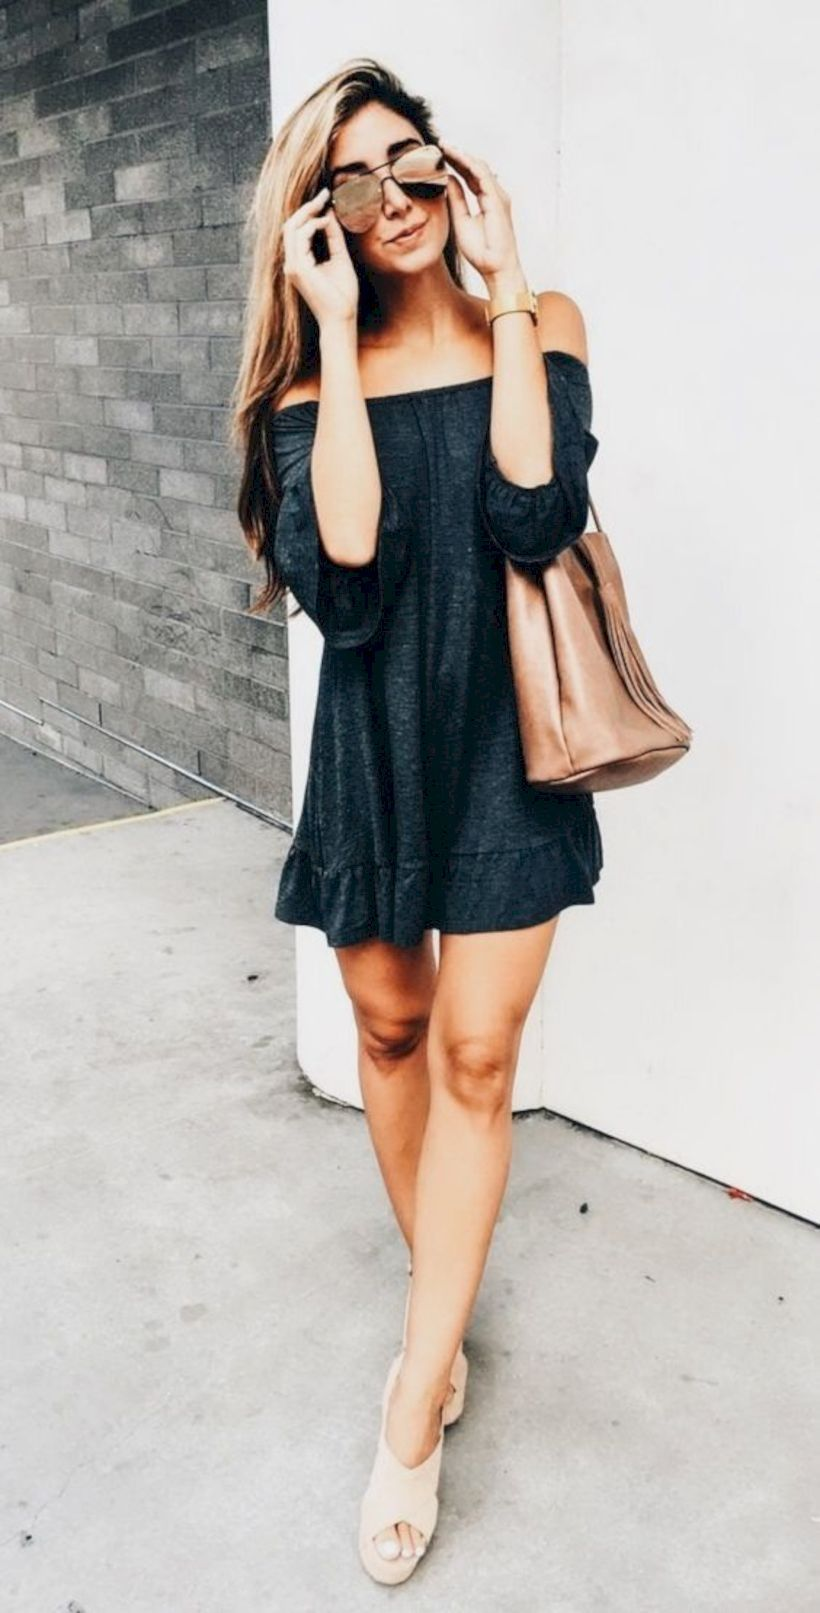 f10626317f nice 39 Summer Outfit Ideas In 2018 You Should Already Own https://attirepin